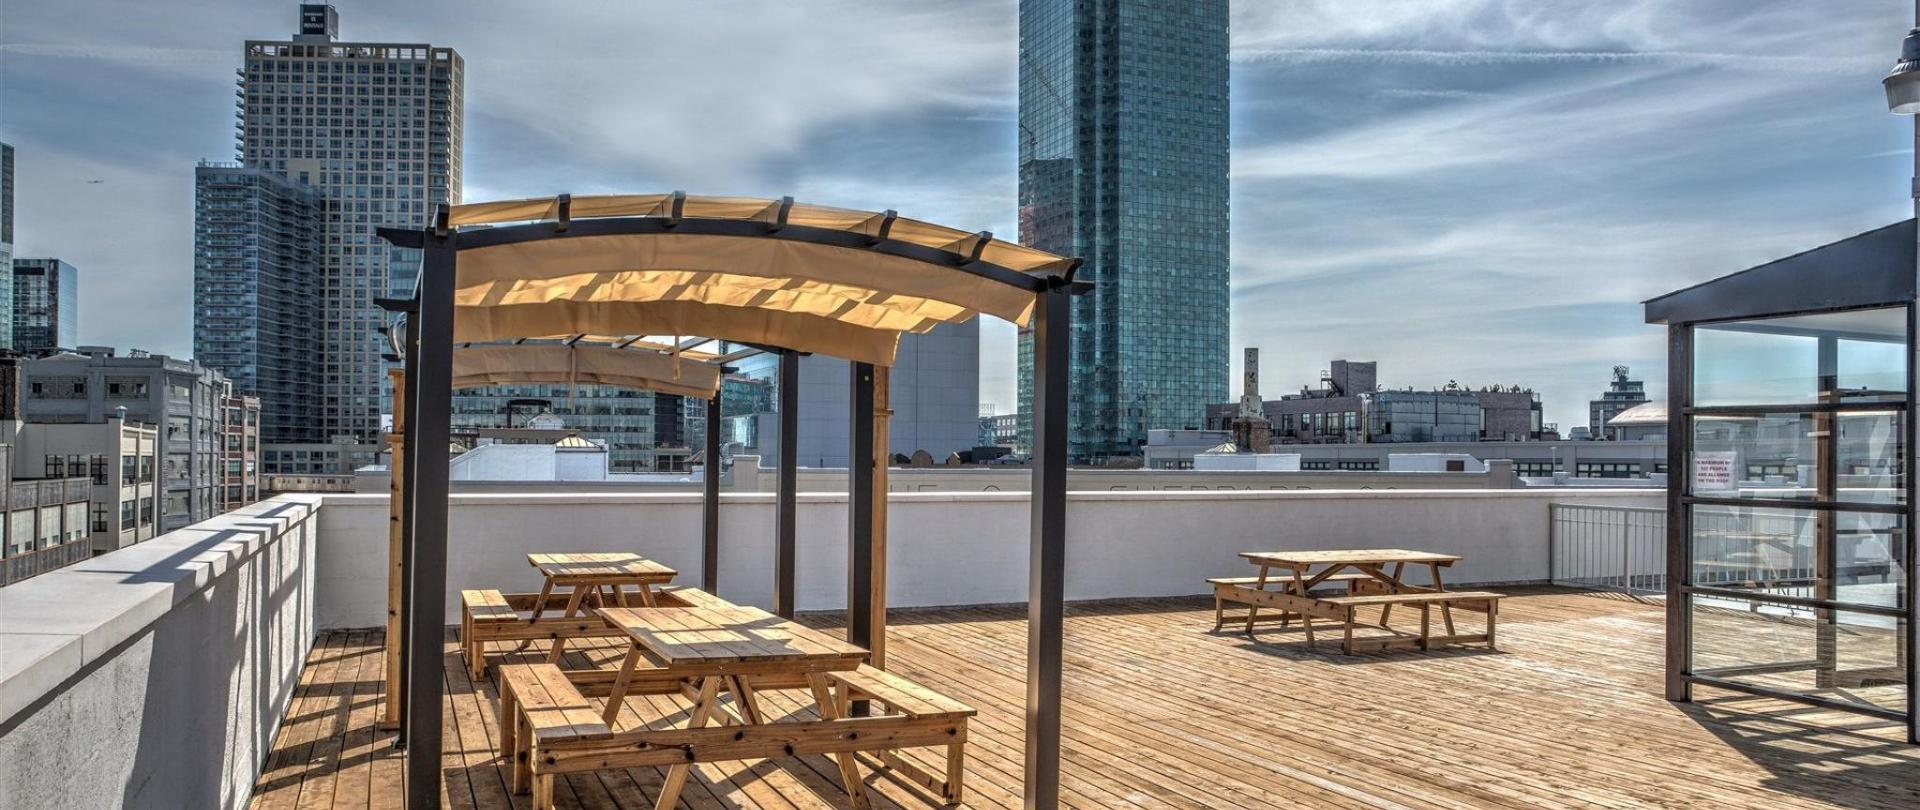 LIC Hotel Official Site | Hotels in Queens